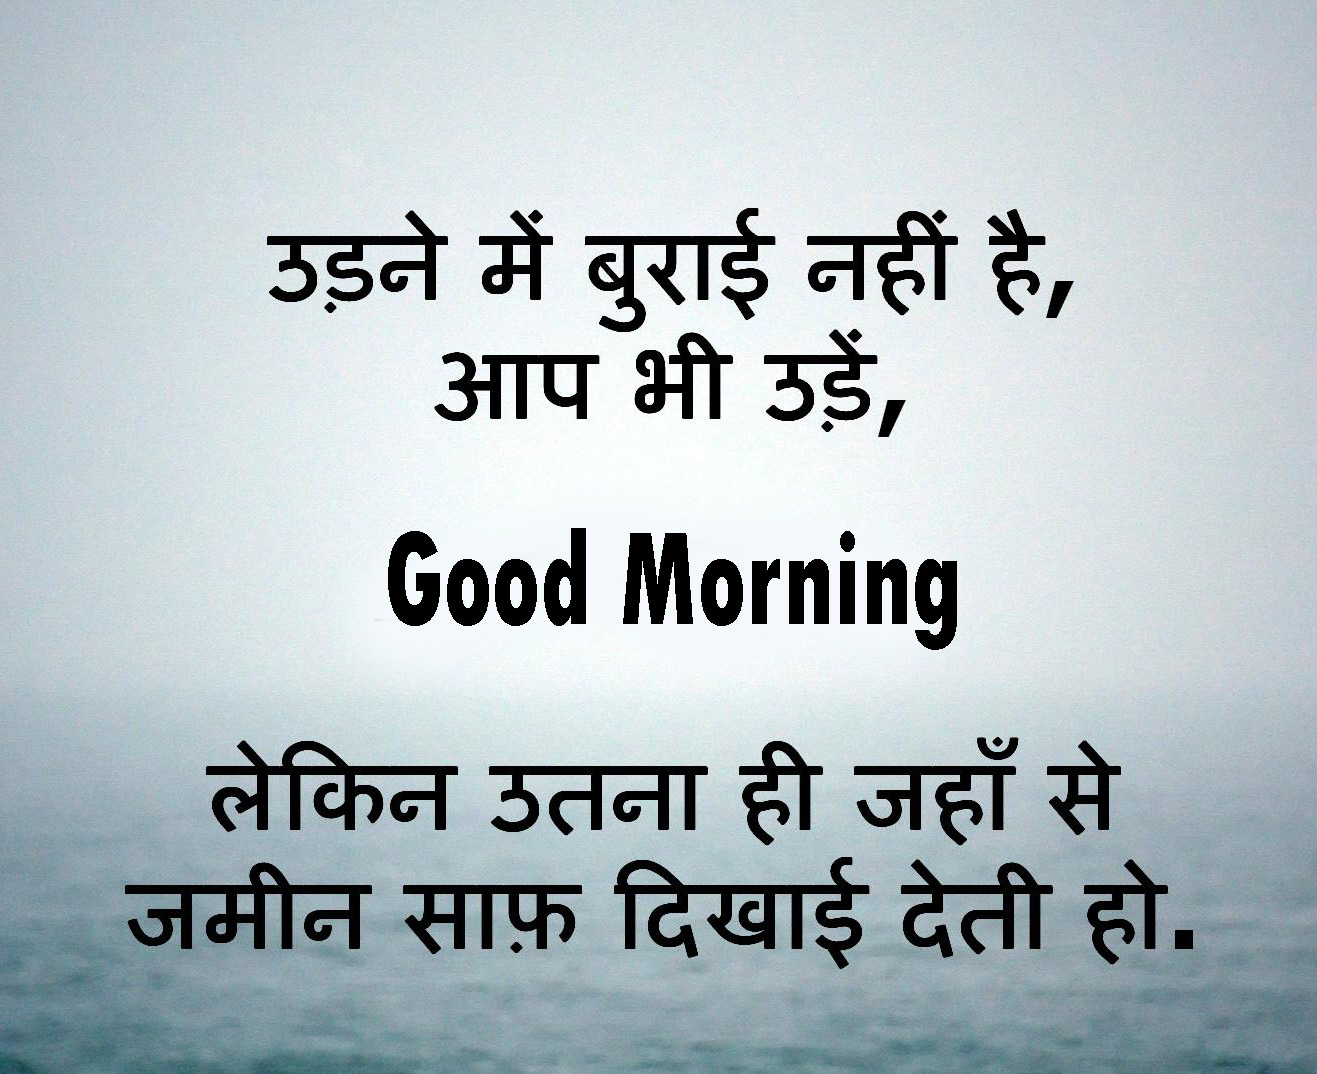 Best Hindi Quotes Good Morning Pics for Whatsapp